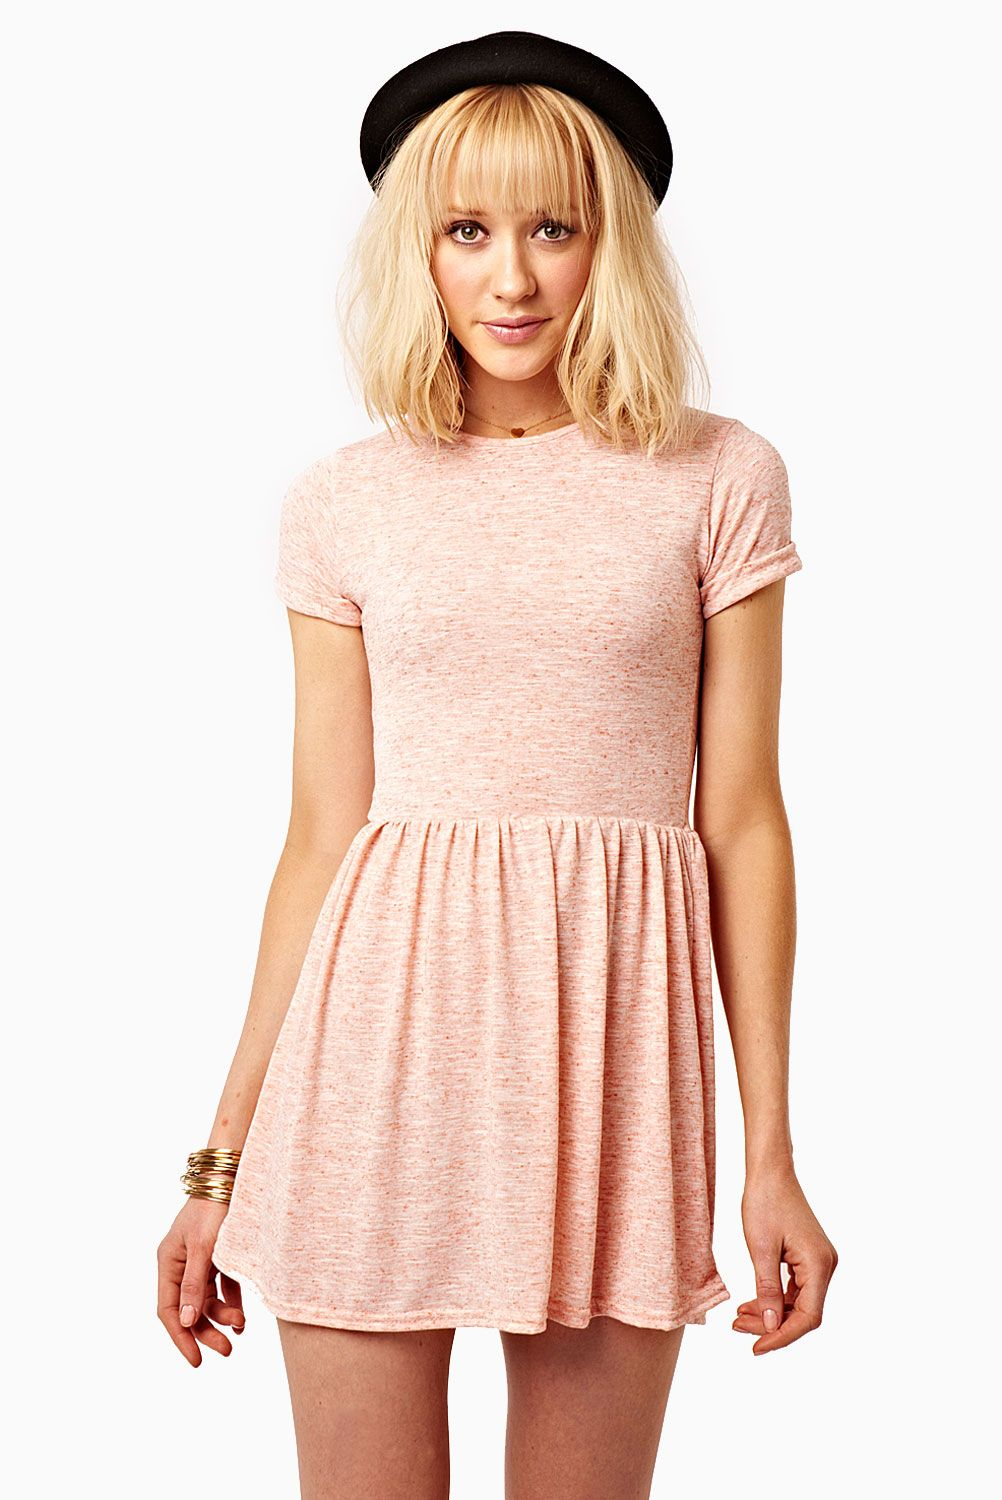 9fe1e8c506 Love this peach T-shirt skater dress from  FashionUnion -- only £15 ...